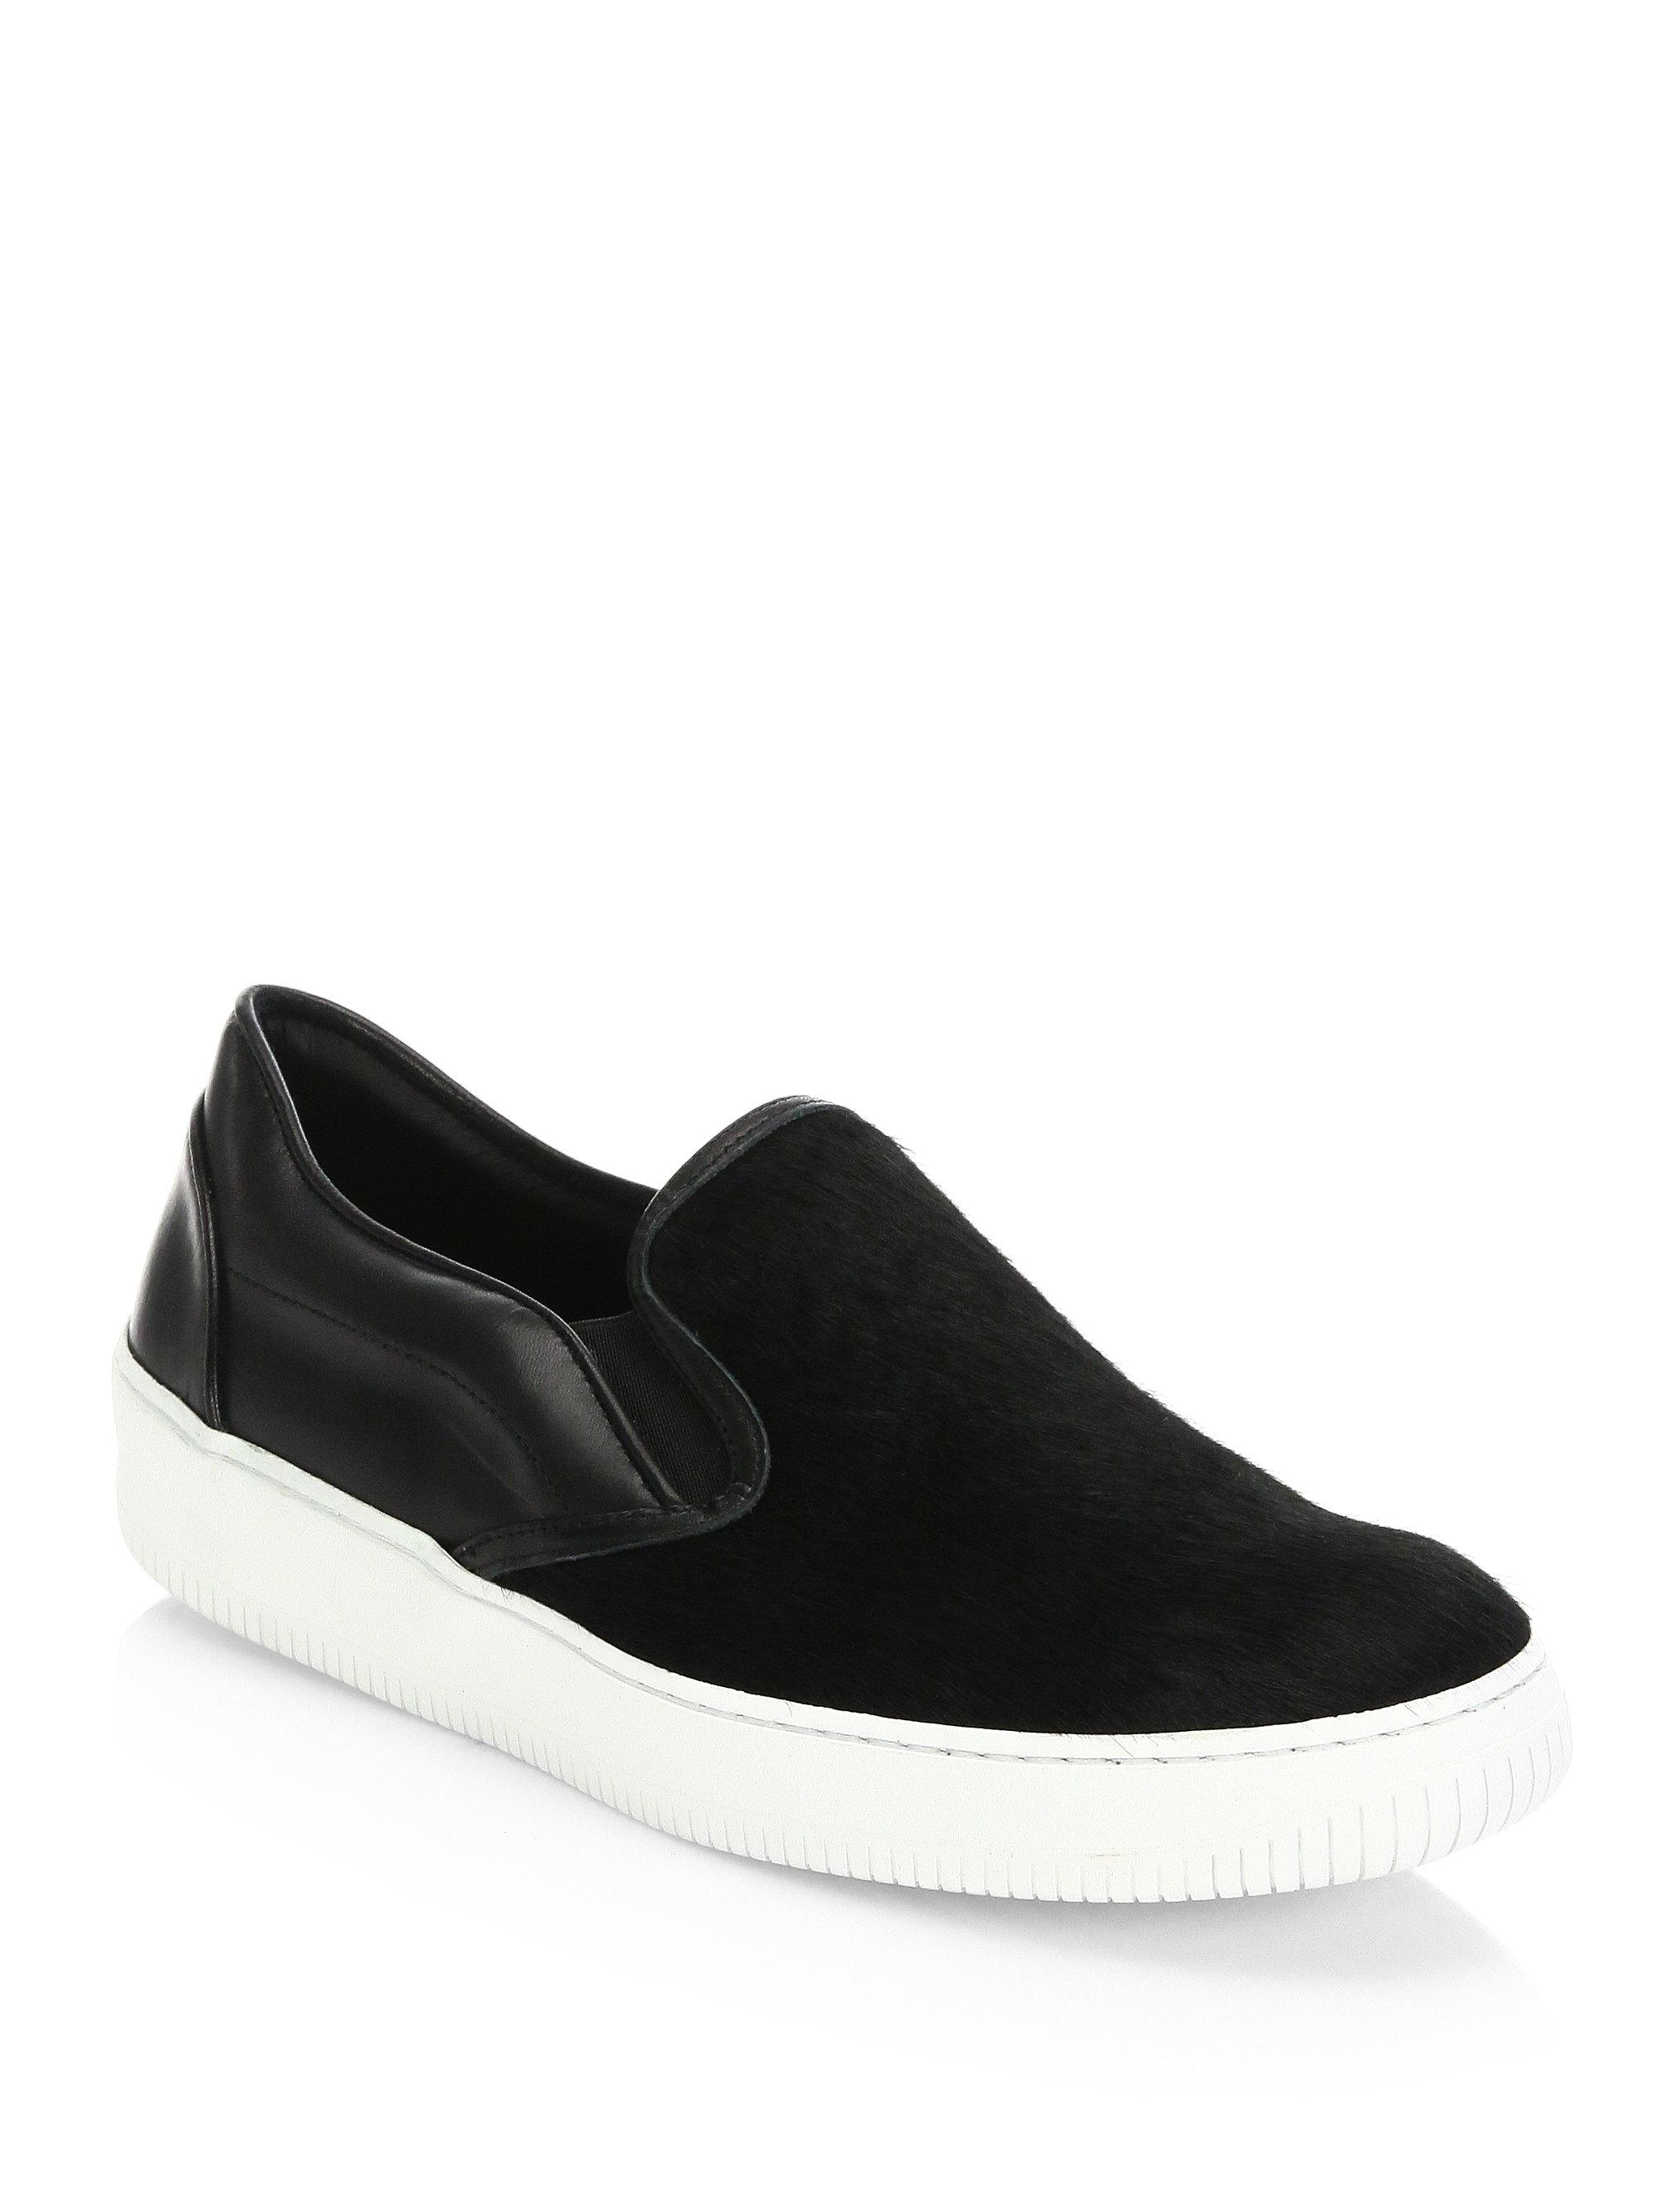 Saks Fifth Avenue COLLECTION Leather Slip-On Sneakers aO22tGv